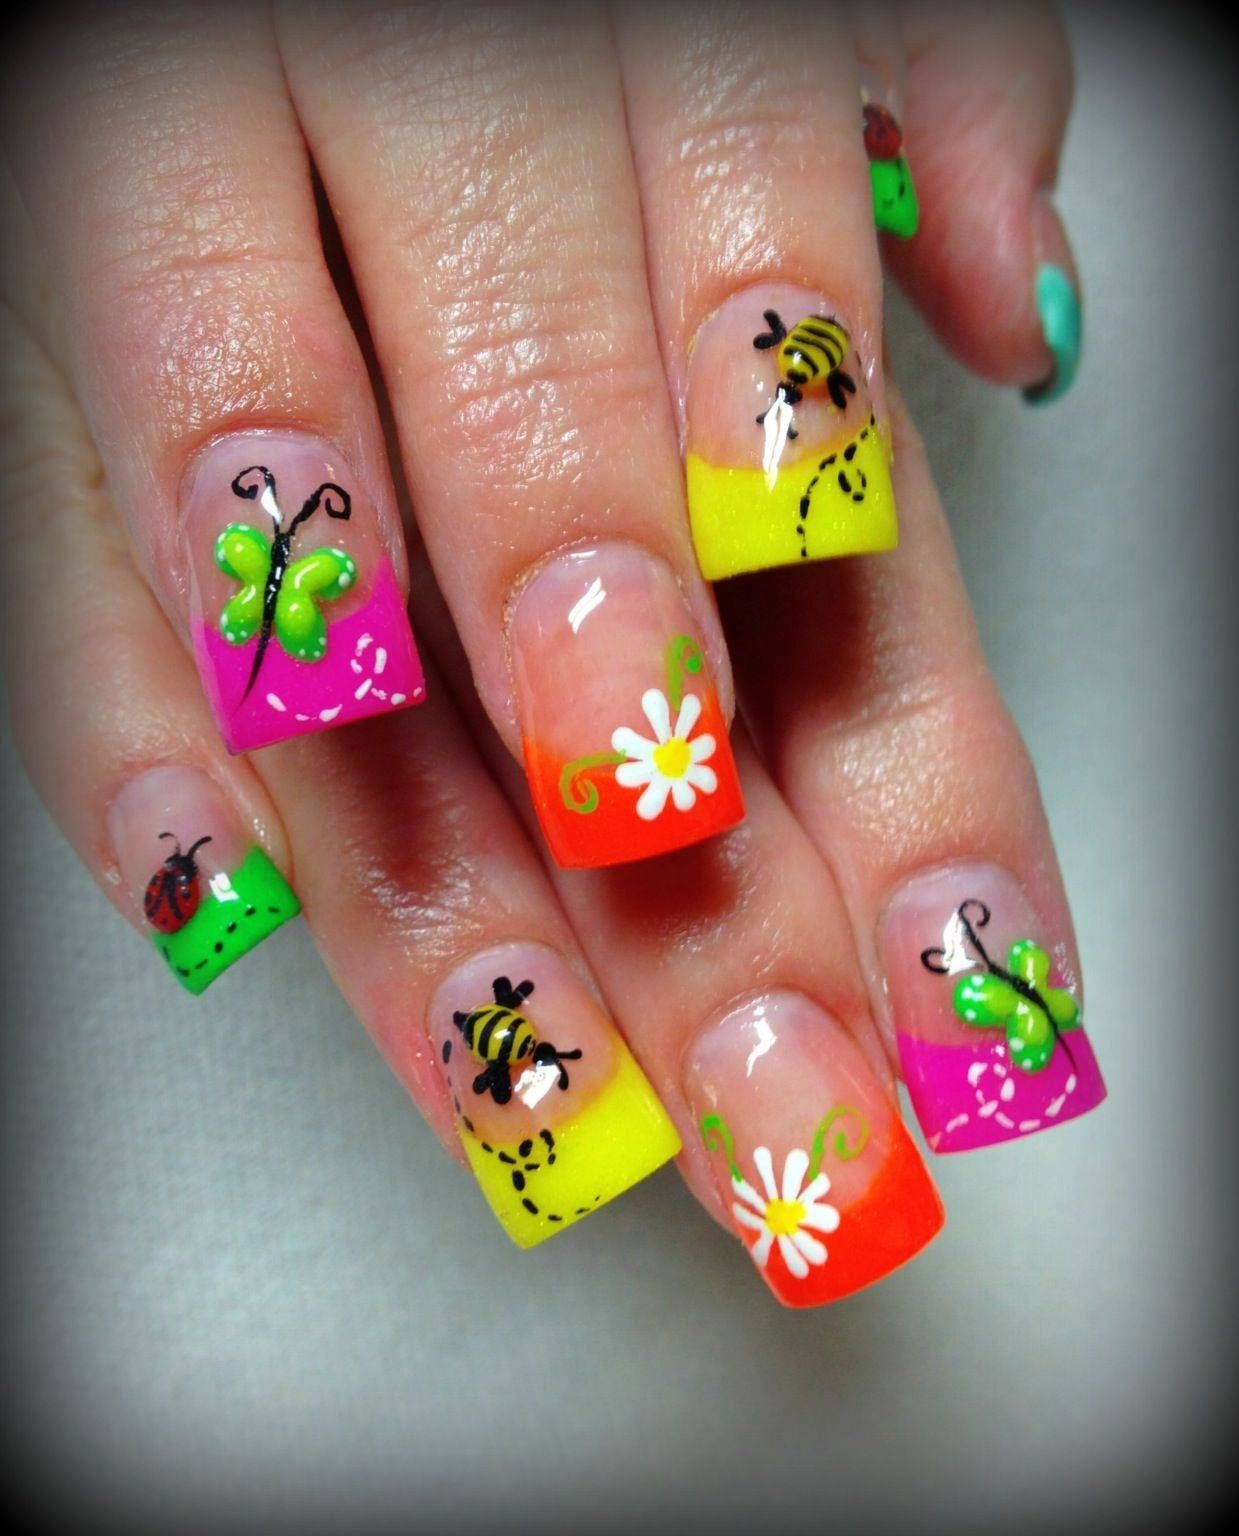 summer colorful nail art Picture from Nail Designs. cute and bright colors  nail art :) - 363608-nail-designs-summer-colorful-nail-art.jpg 1,239×1,536